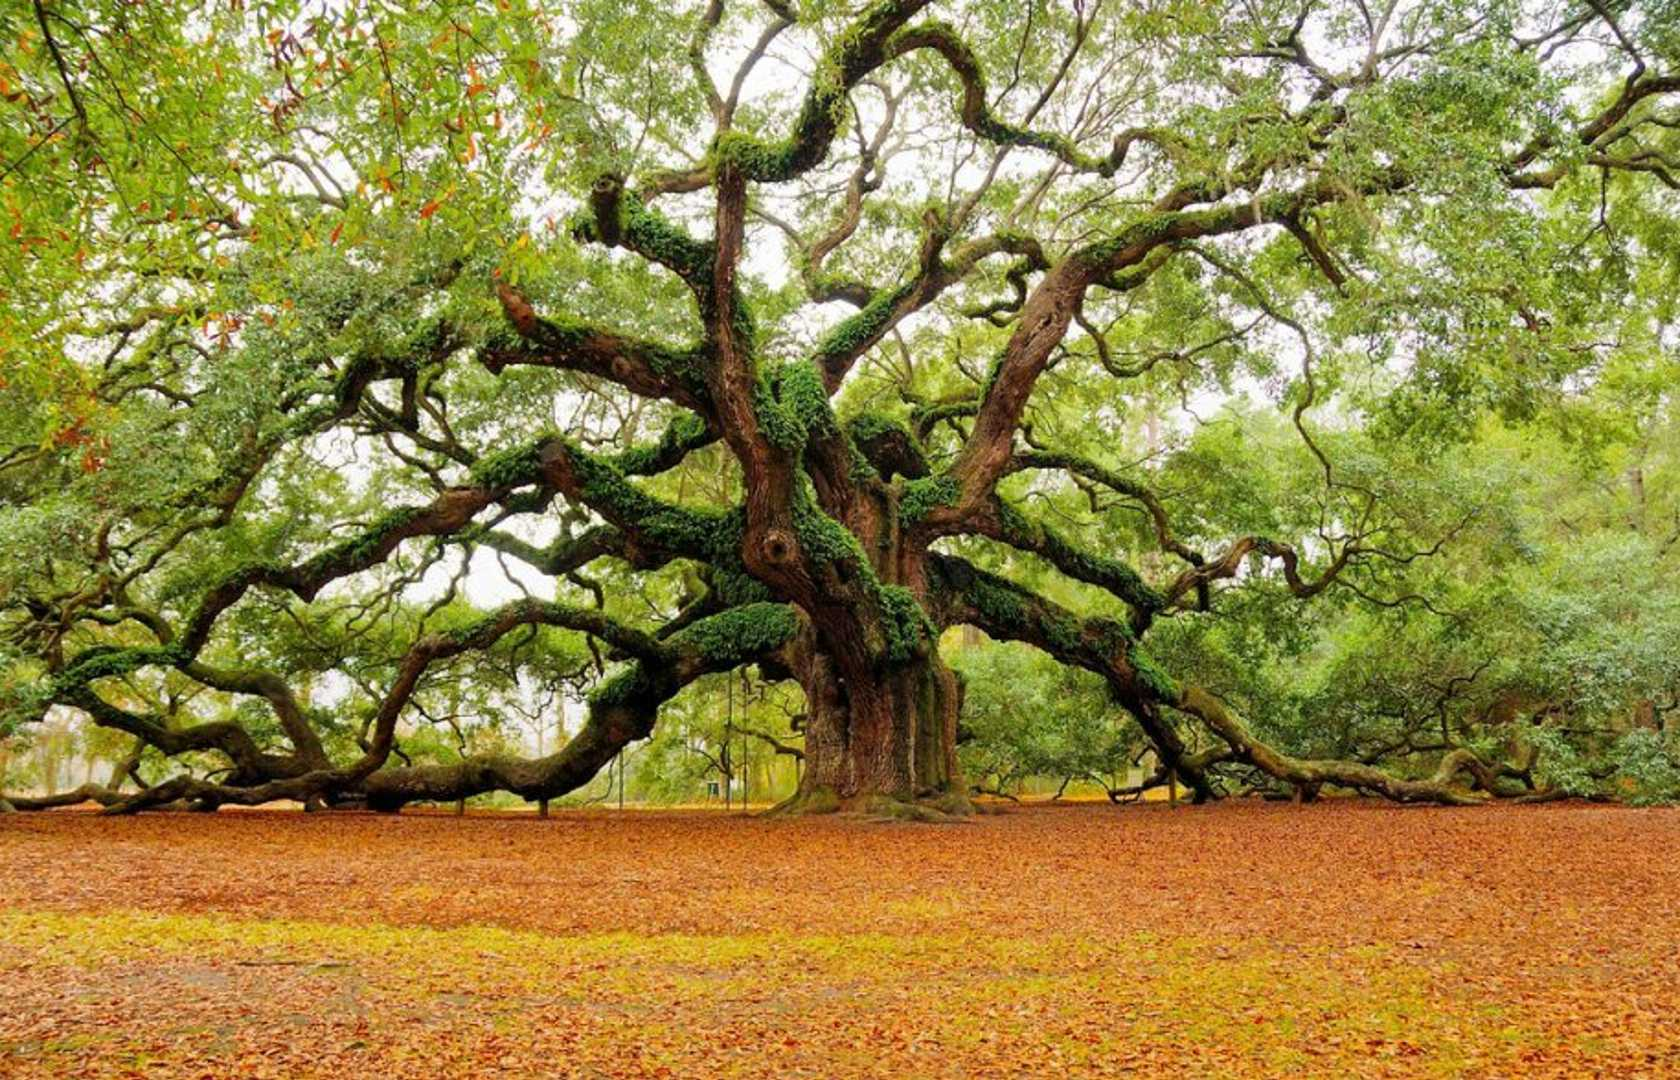 The Angel Oak Tree in South Carolina